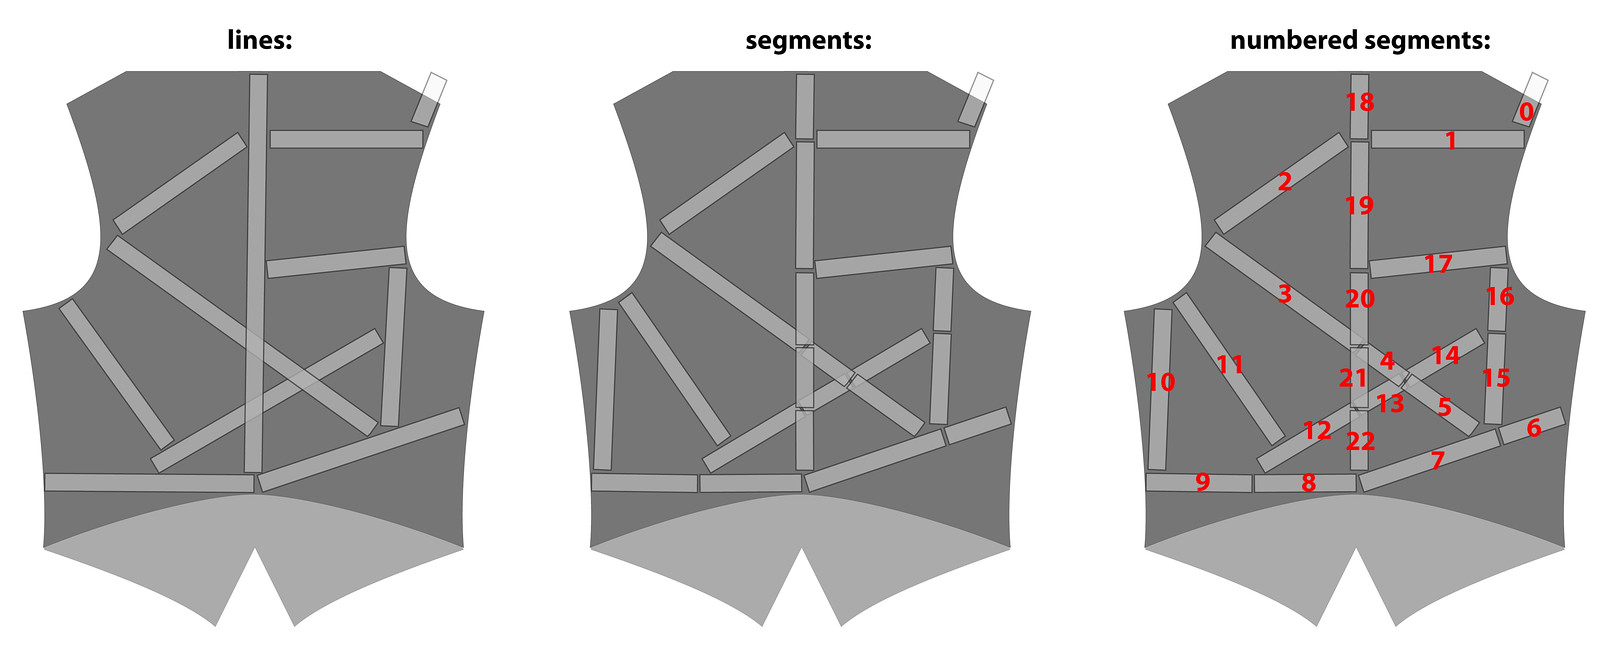 My Segments Display - segments